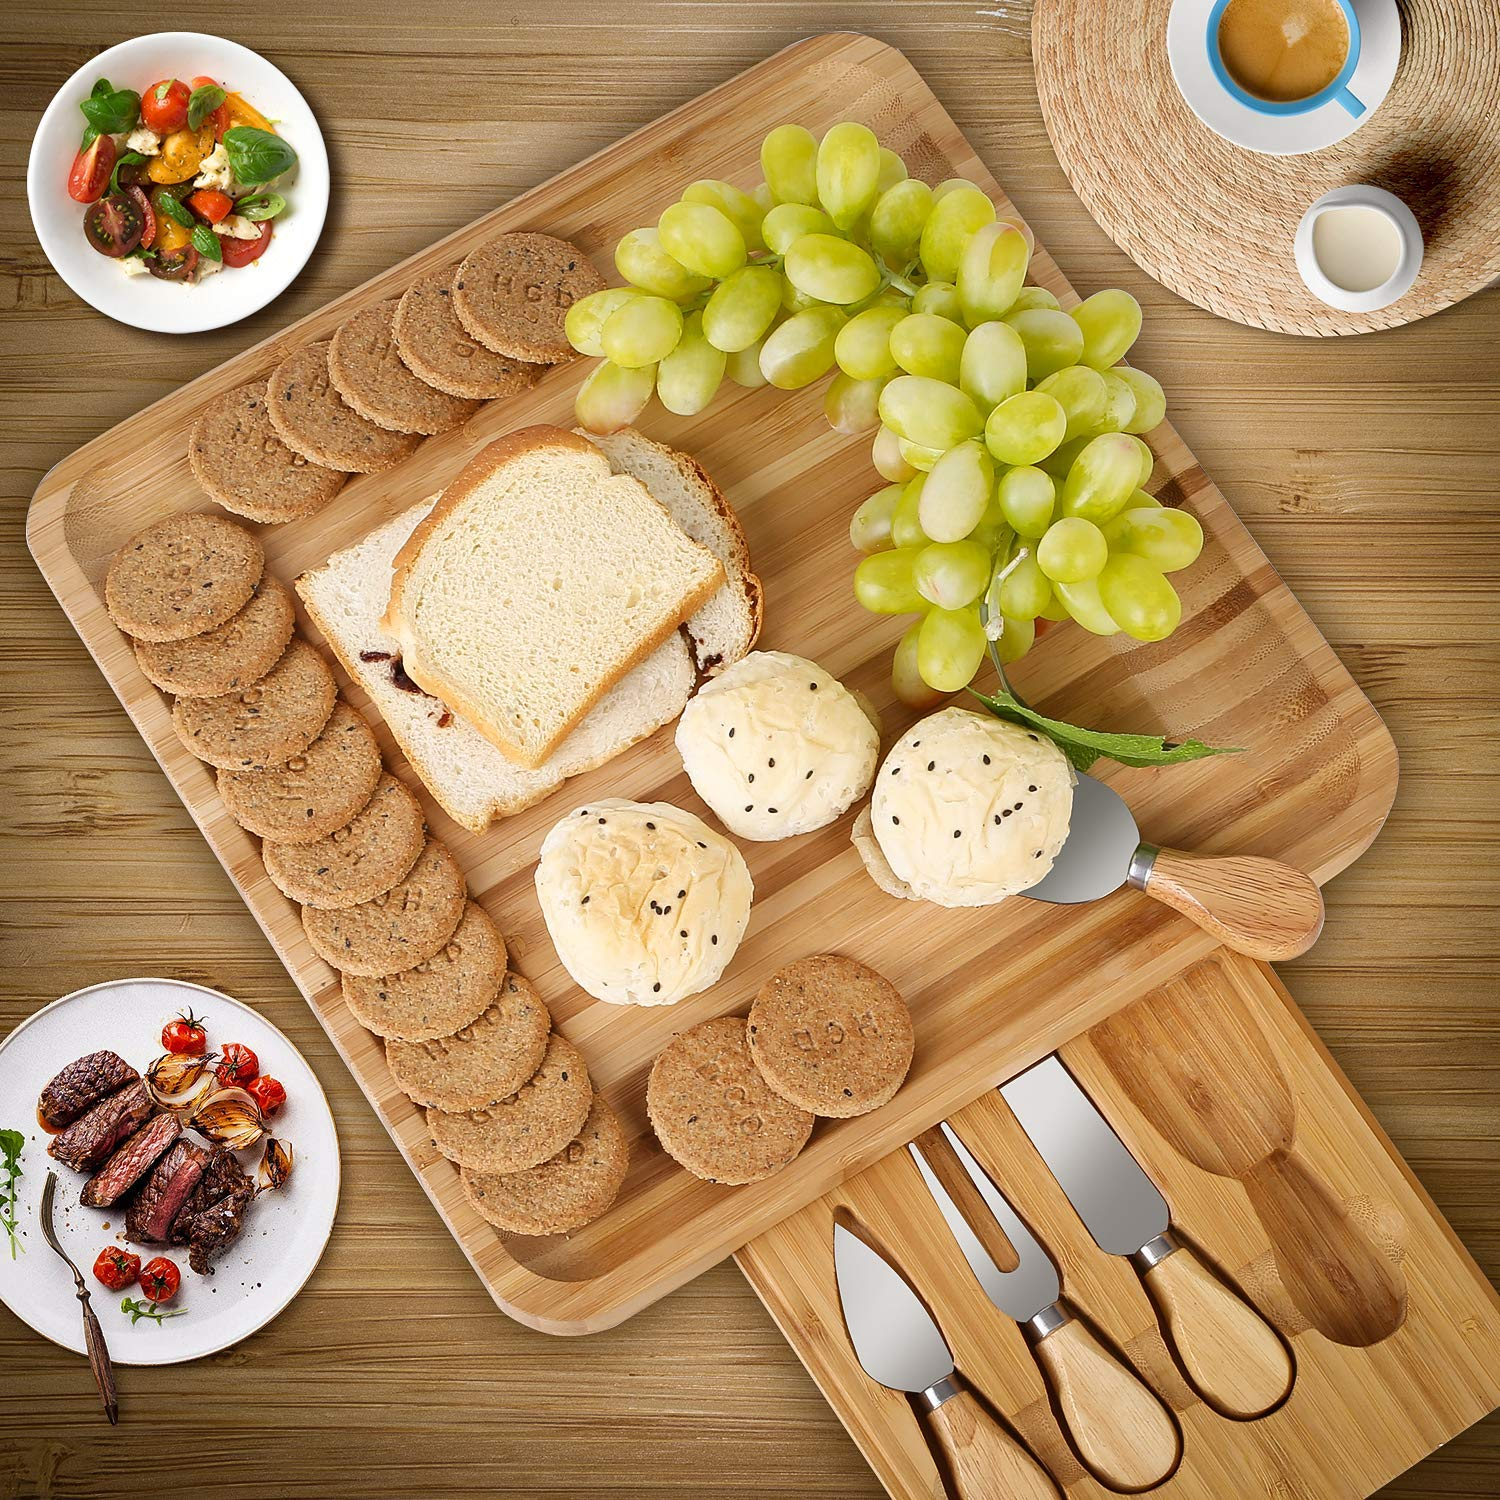 HOMFA Bamboo Cheese Board Cheese Platter with Utensils Set and 4 Stainless Steel Cutting Knives Cracker and Meat Serving Tray for Display, Decorations, and Cheese Lovers by Homfa